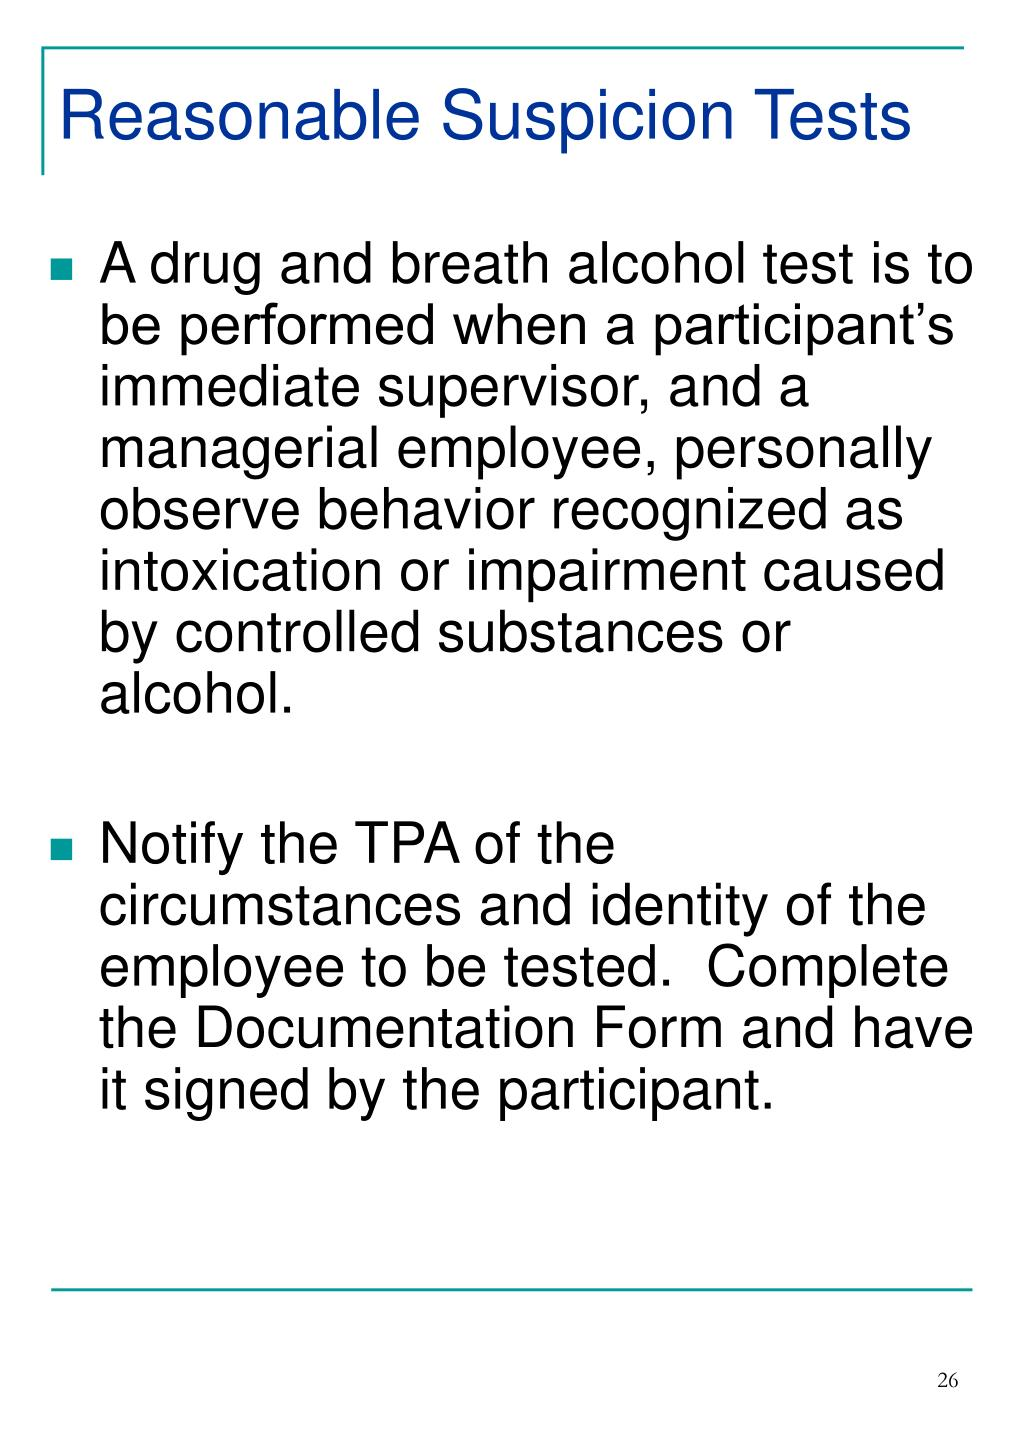 Reasonable Suspicion Tests